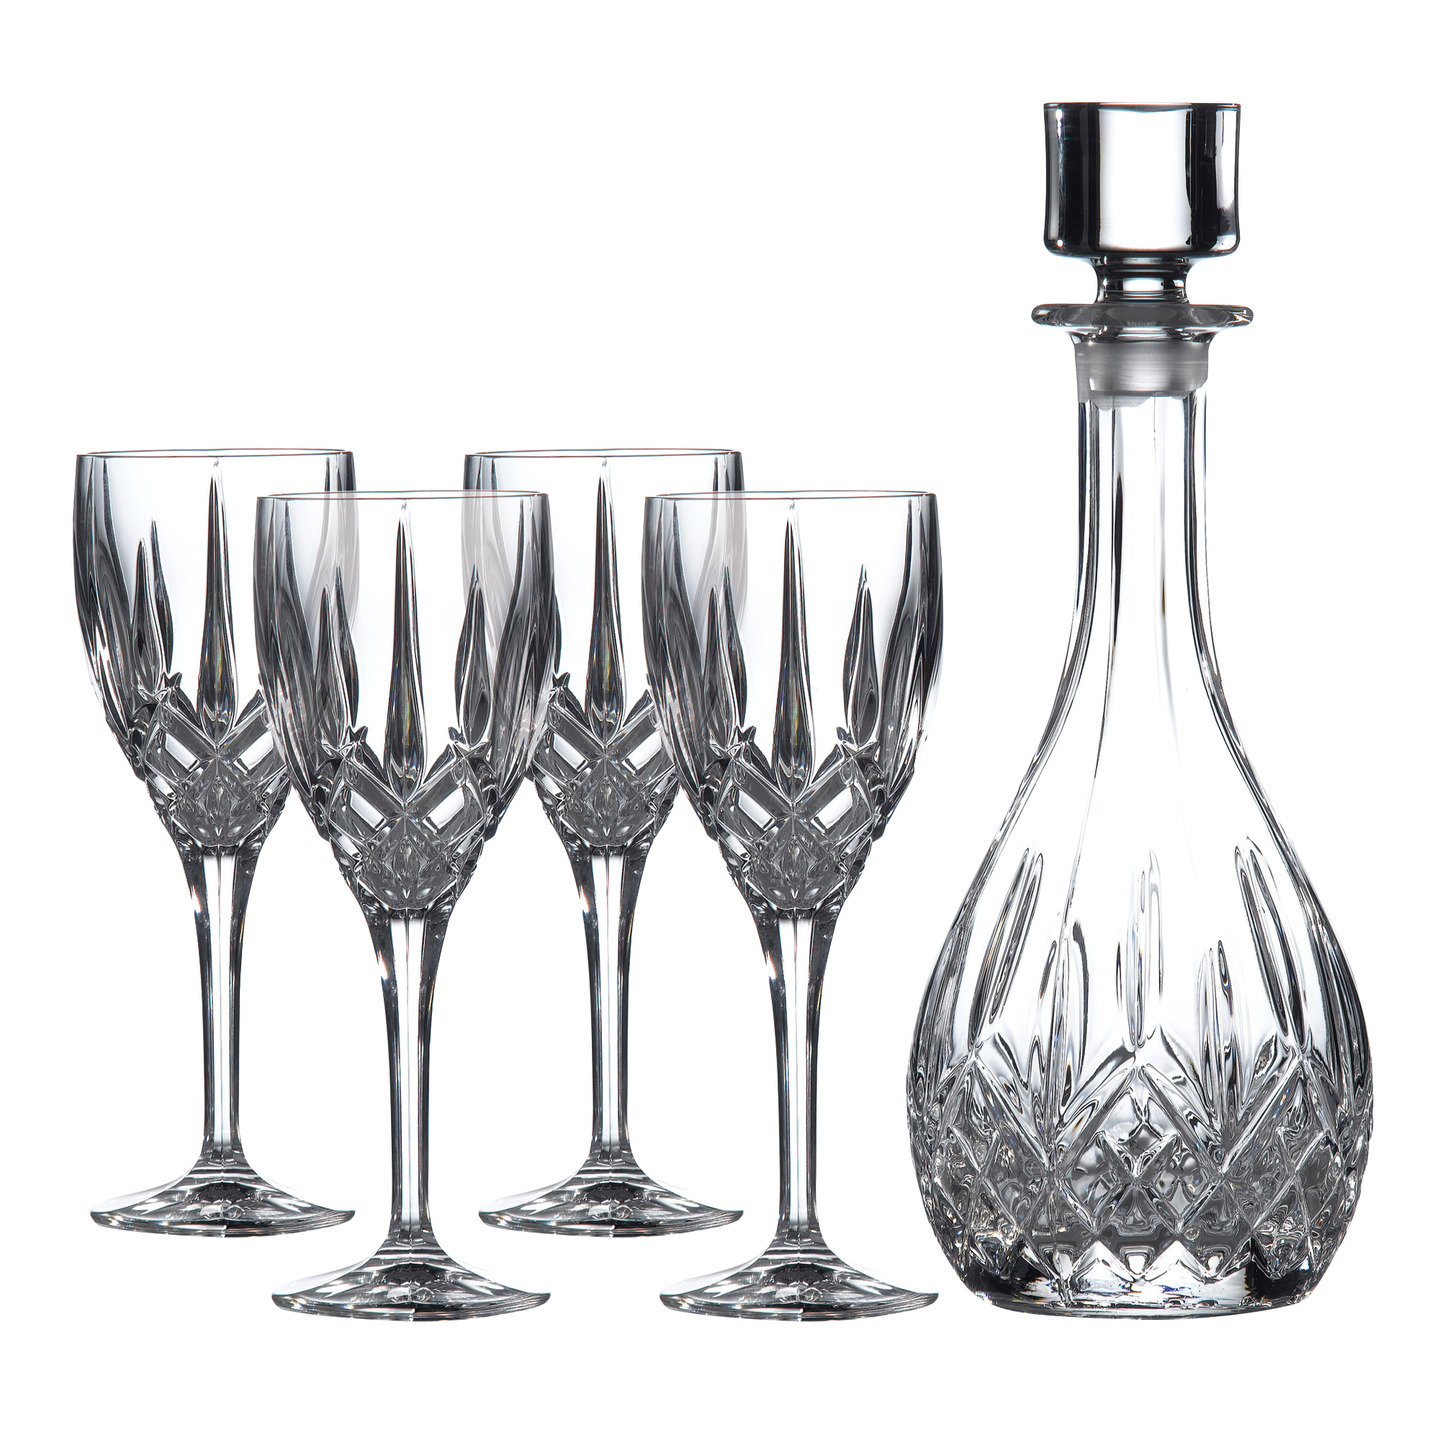 Exquisite decanter set for dining sets ideas with crystal decanter set